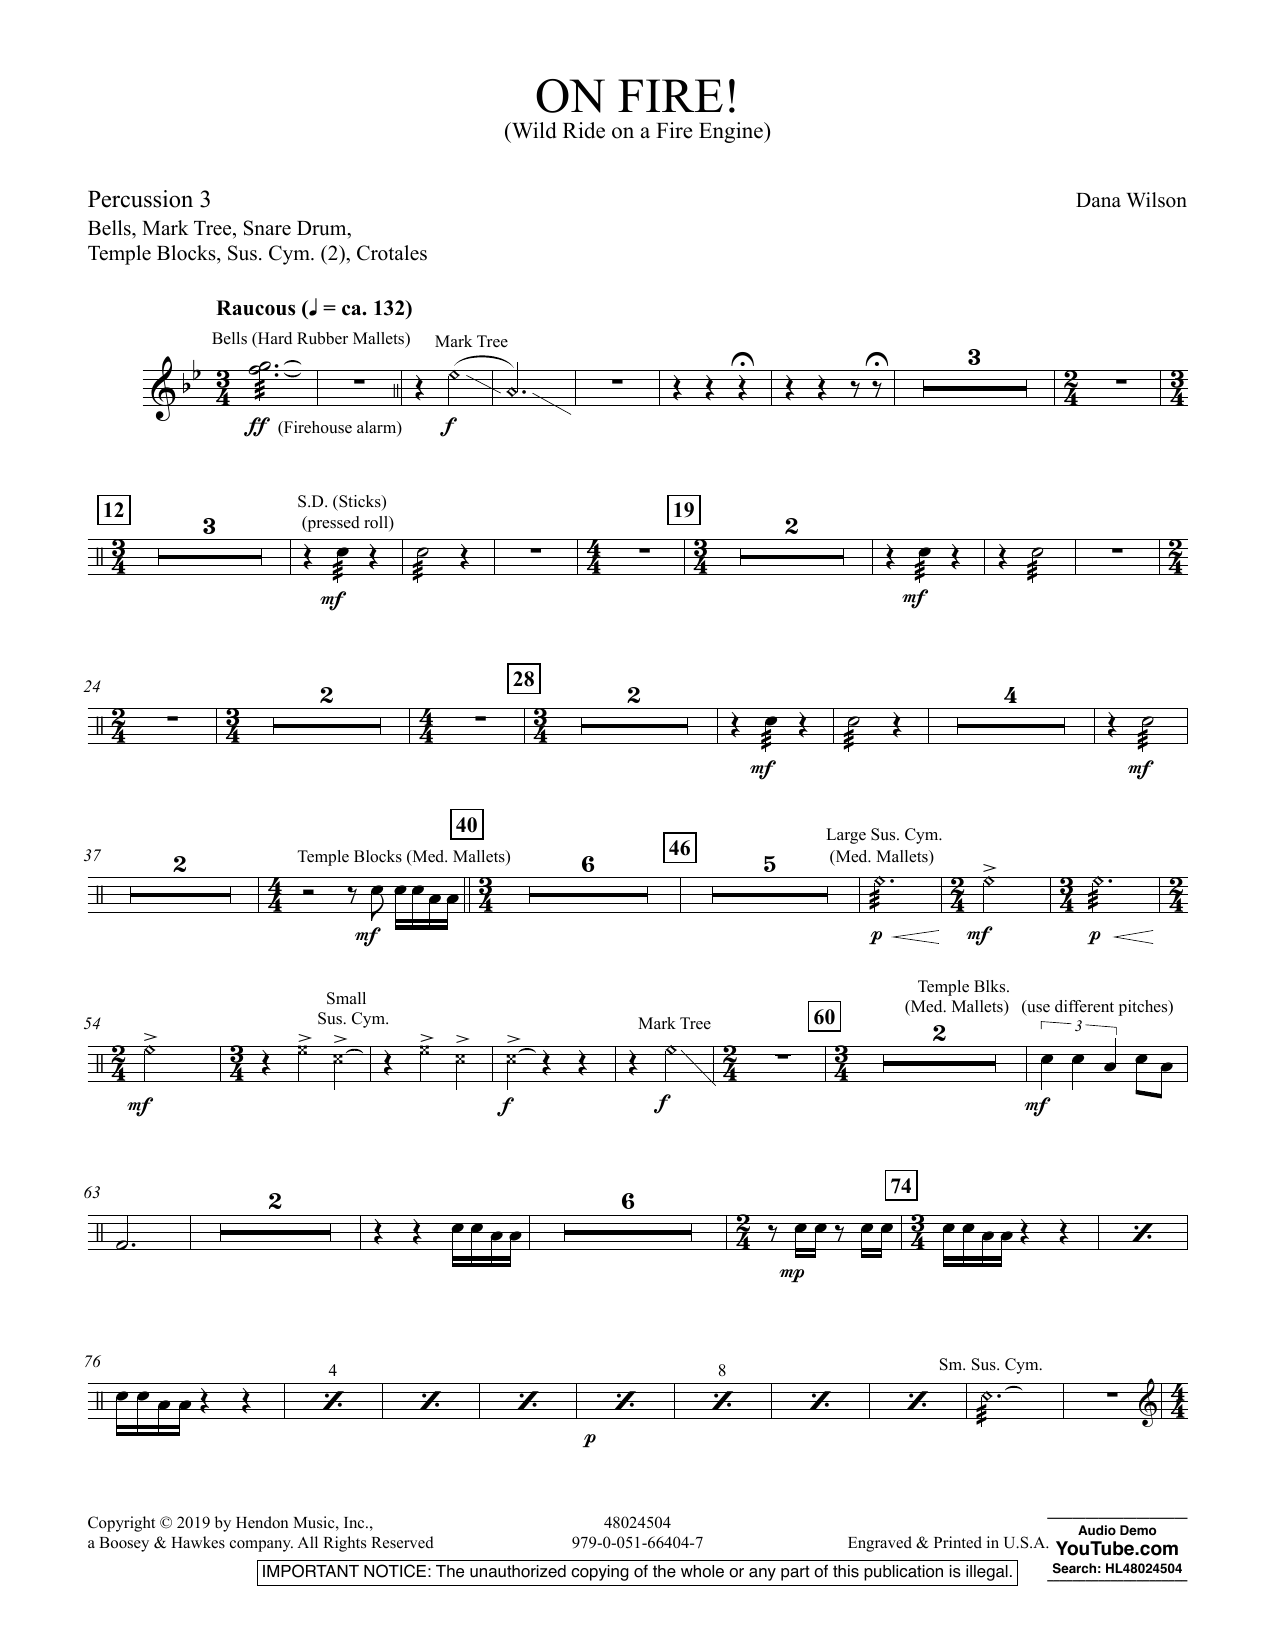 On Fire! (Wild Ride on a Fire Engine) - Percussion 3 (Concert Band)